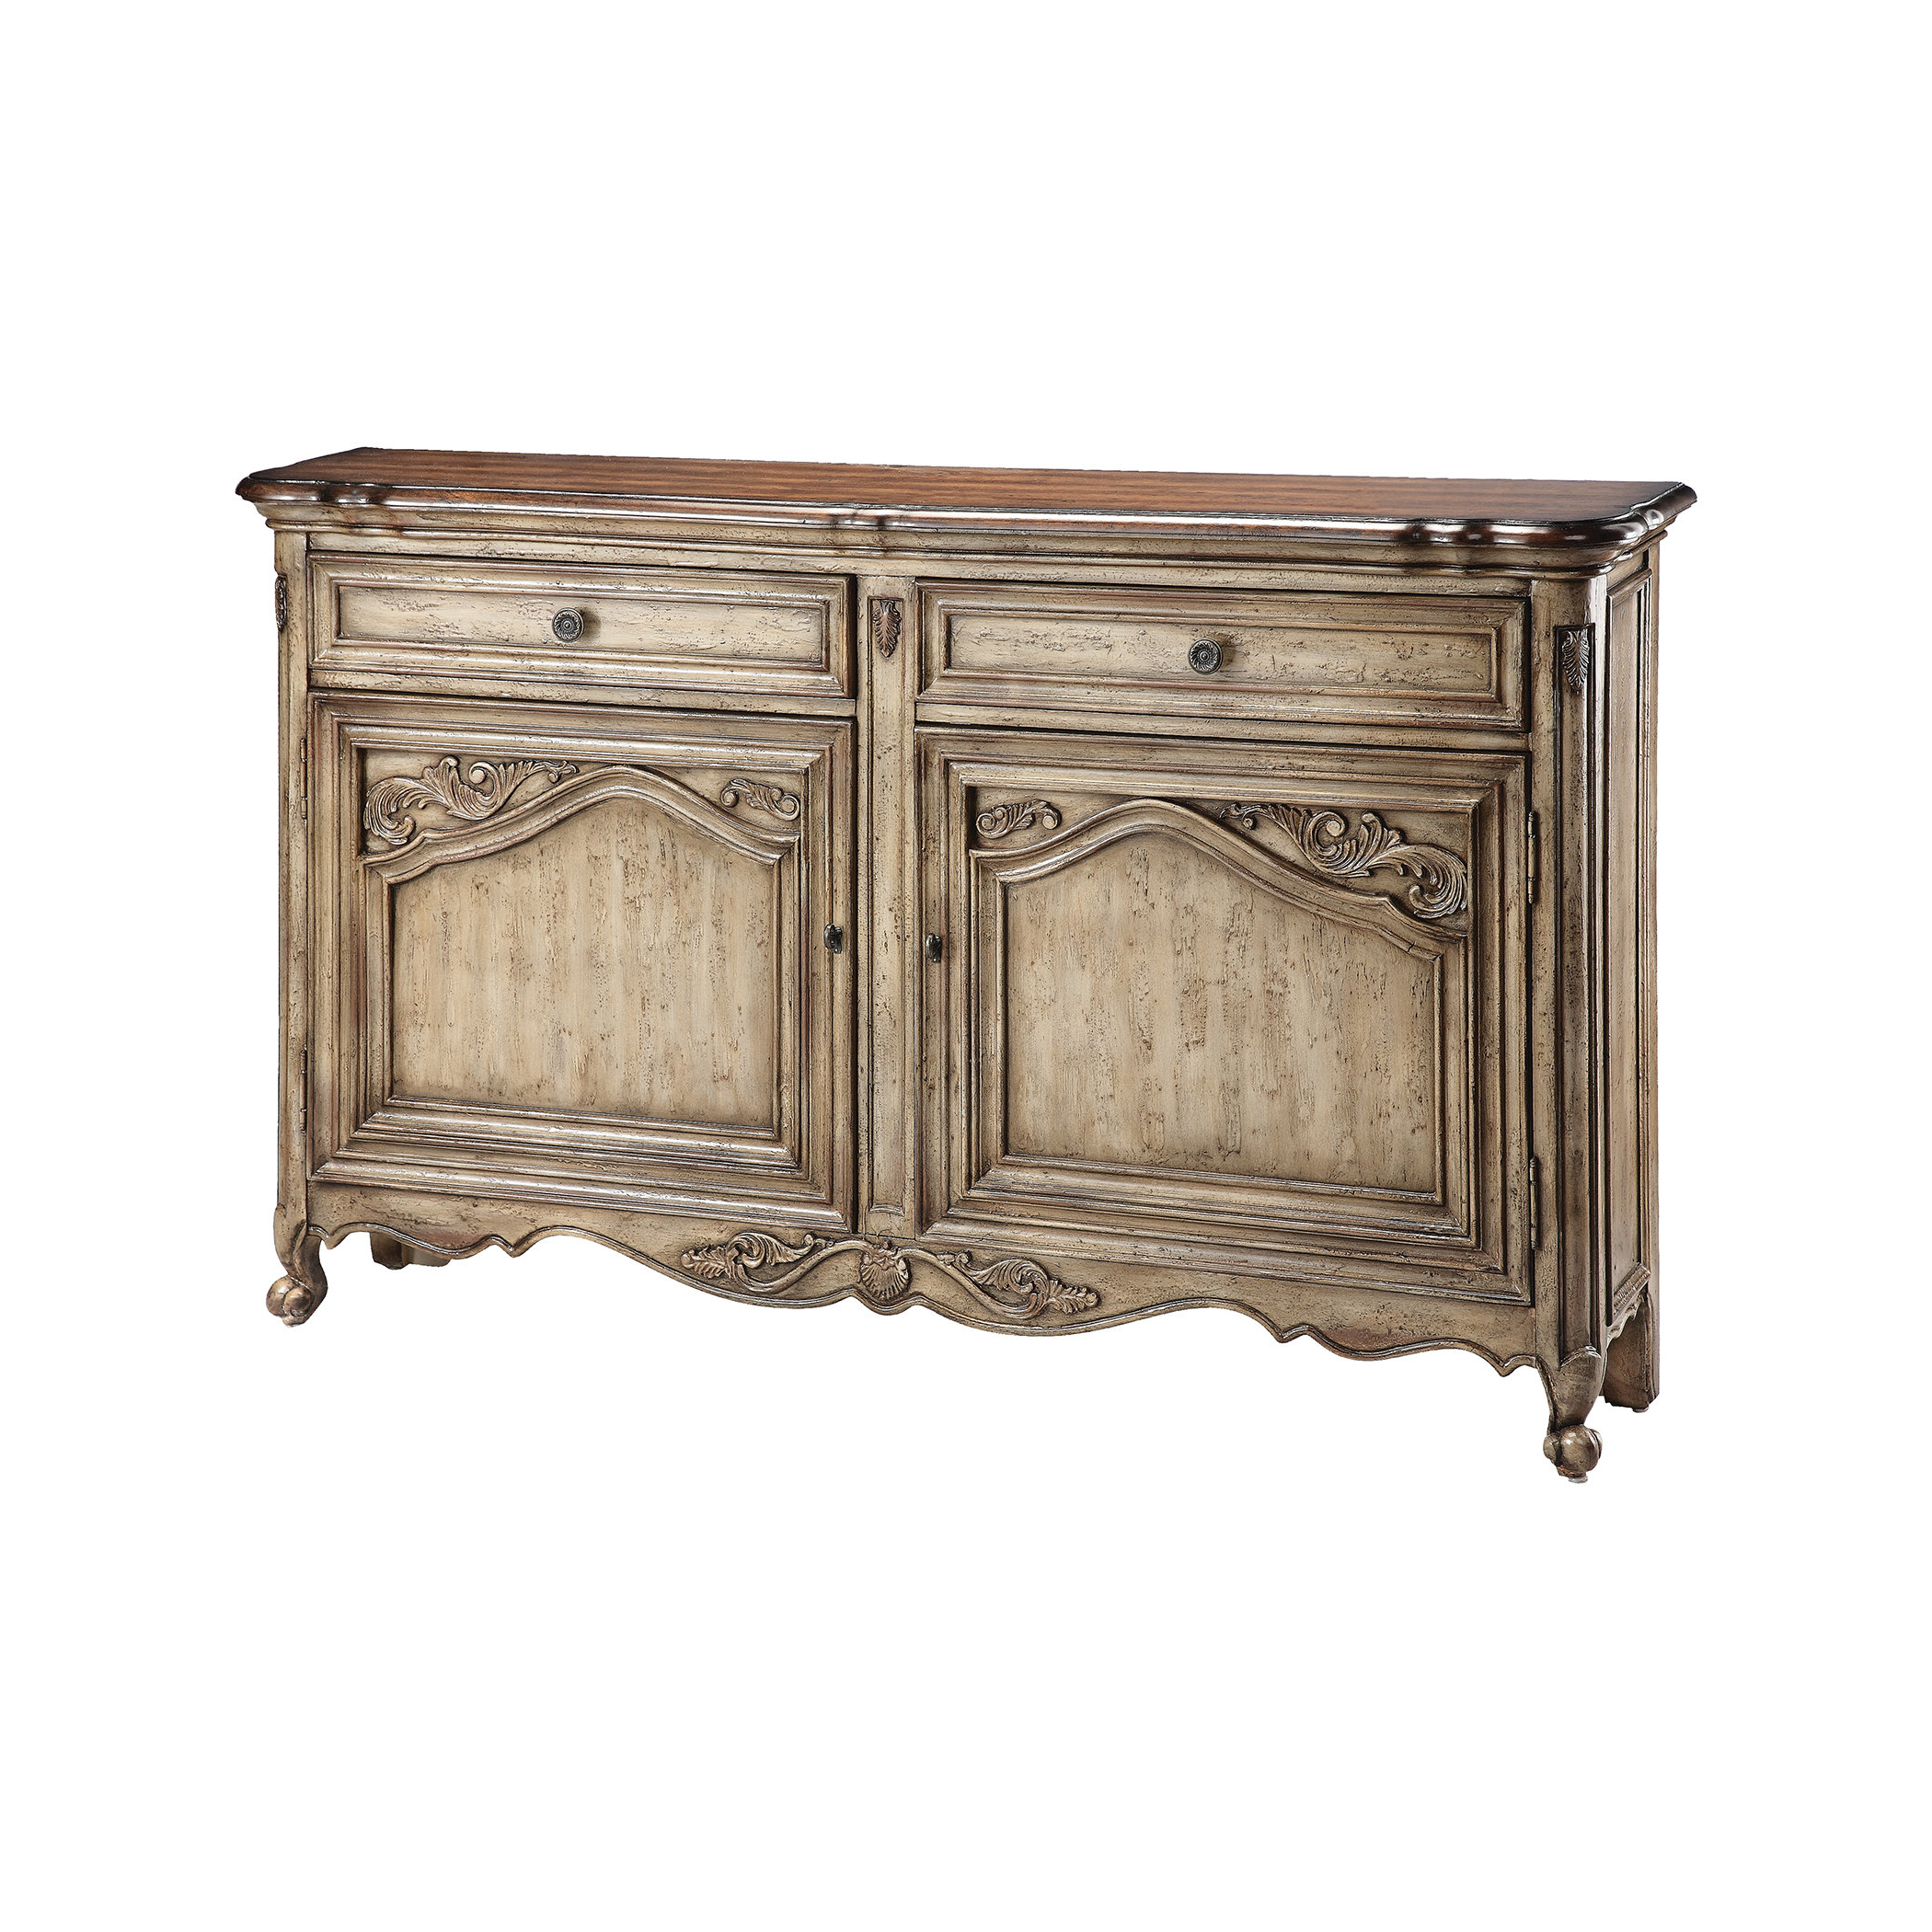 Hewlett Sideboards Intended For Recent Dormer Sideboard (Gallery 7 of 20)